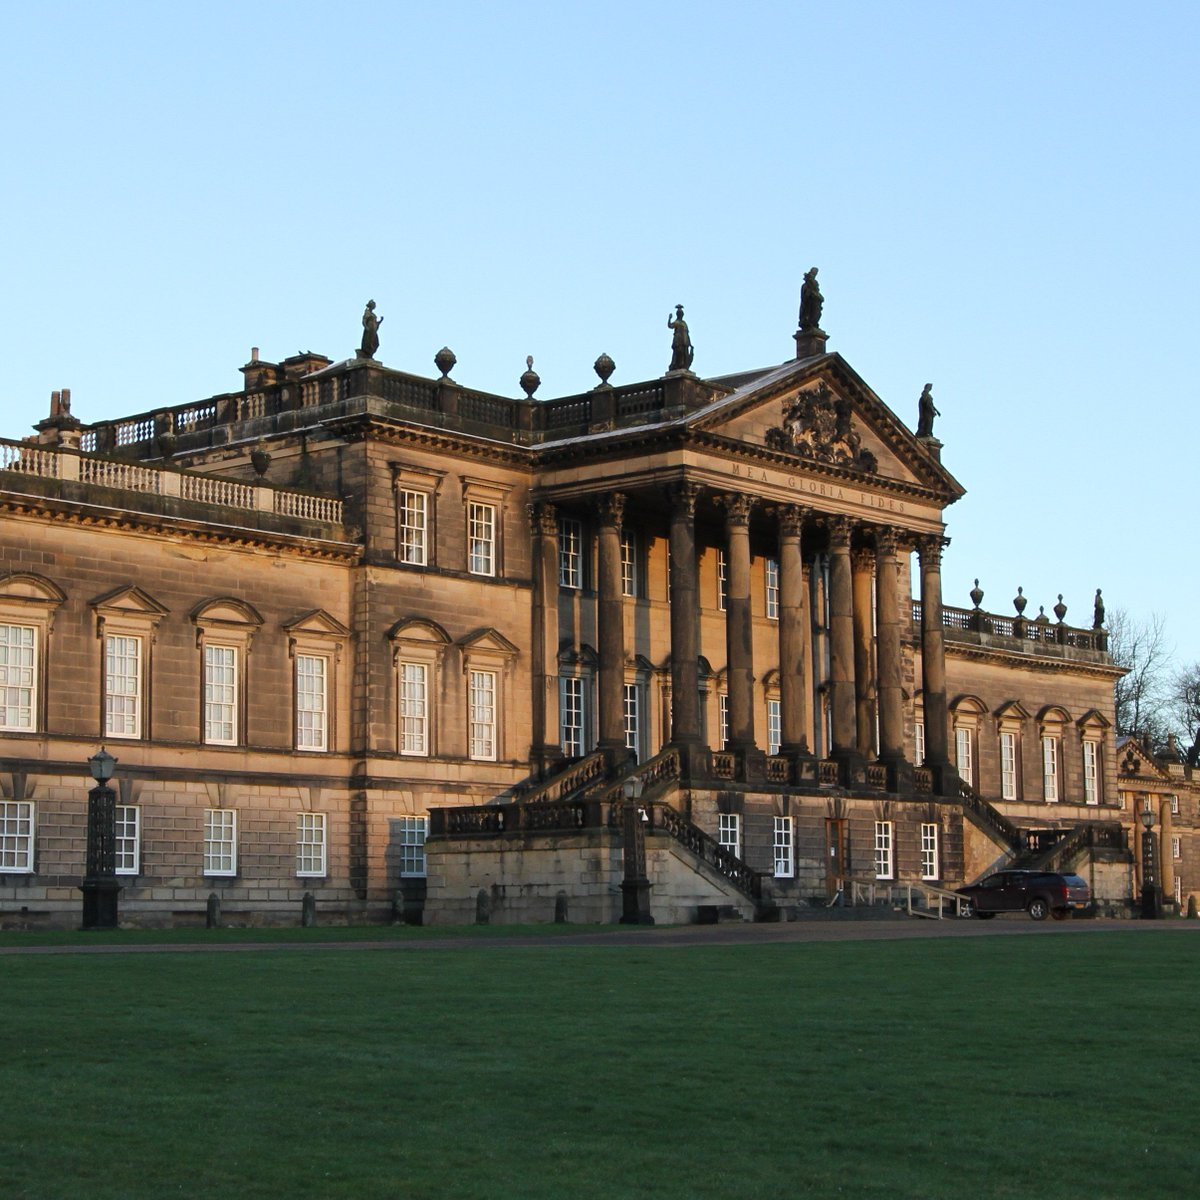 Please contact us 01226 351161 or 749639 for details of our tours @Wentworth_house #tours #weddings #events<br>http://pic.twitter.com/a6zpw7WgT2